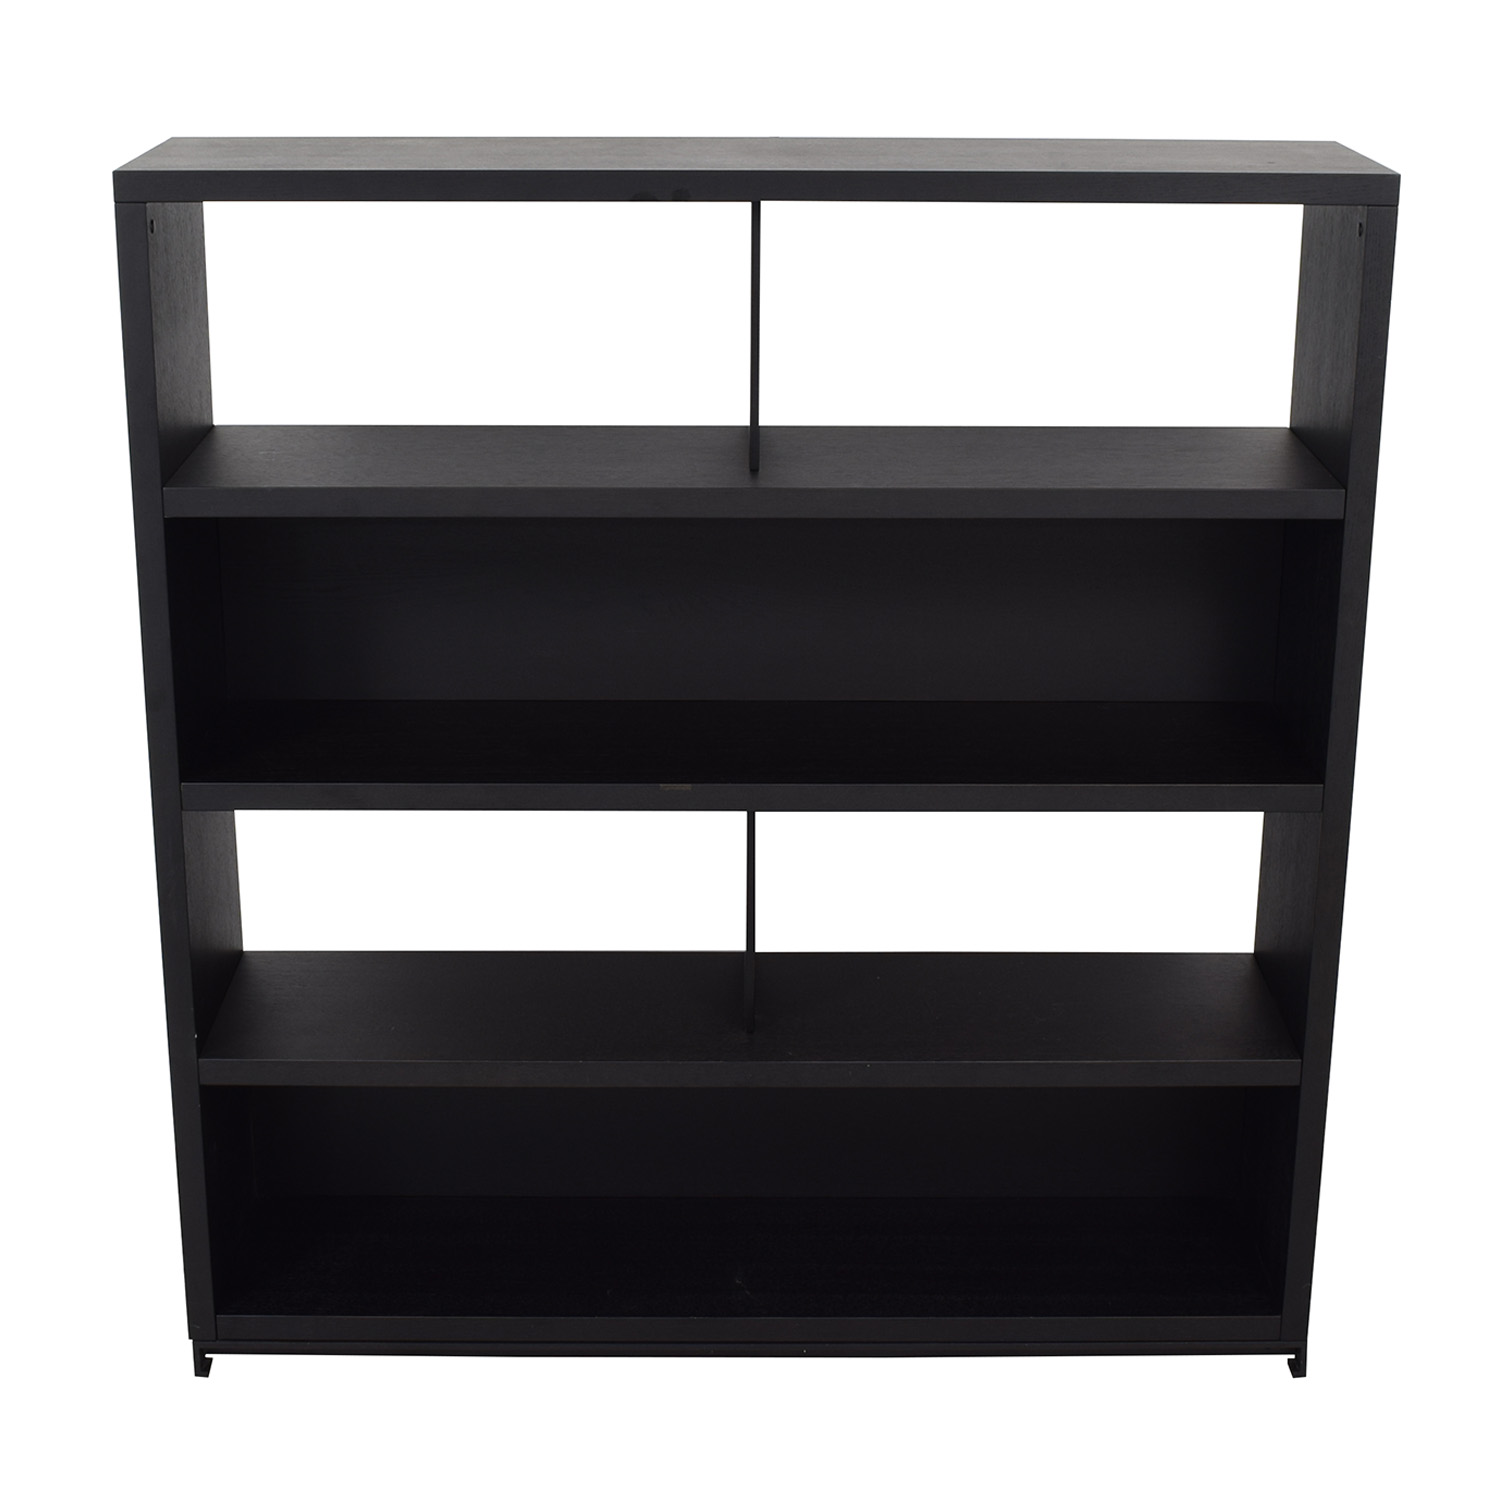 Tui Lifestyle Grey Oak Bookshelf sale